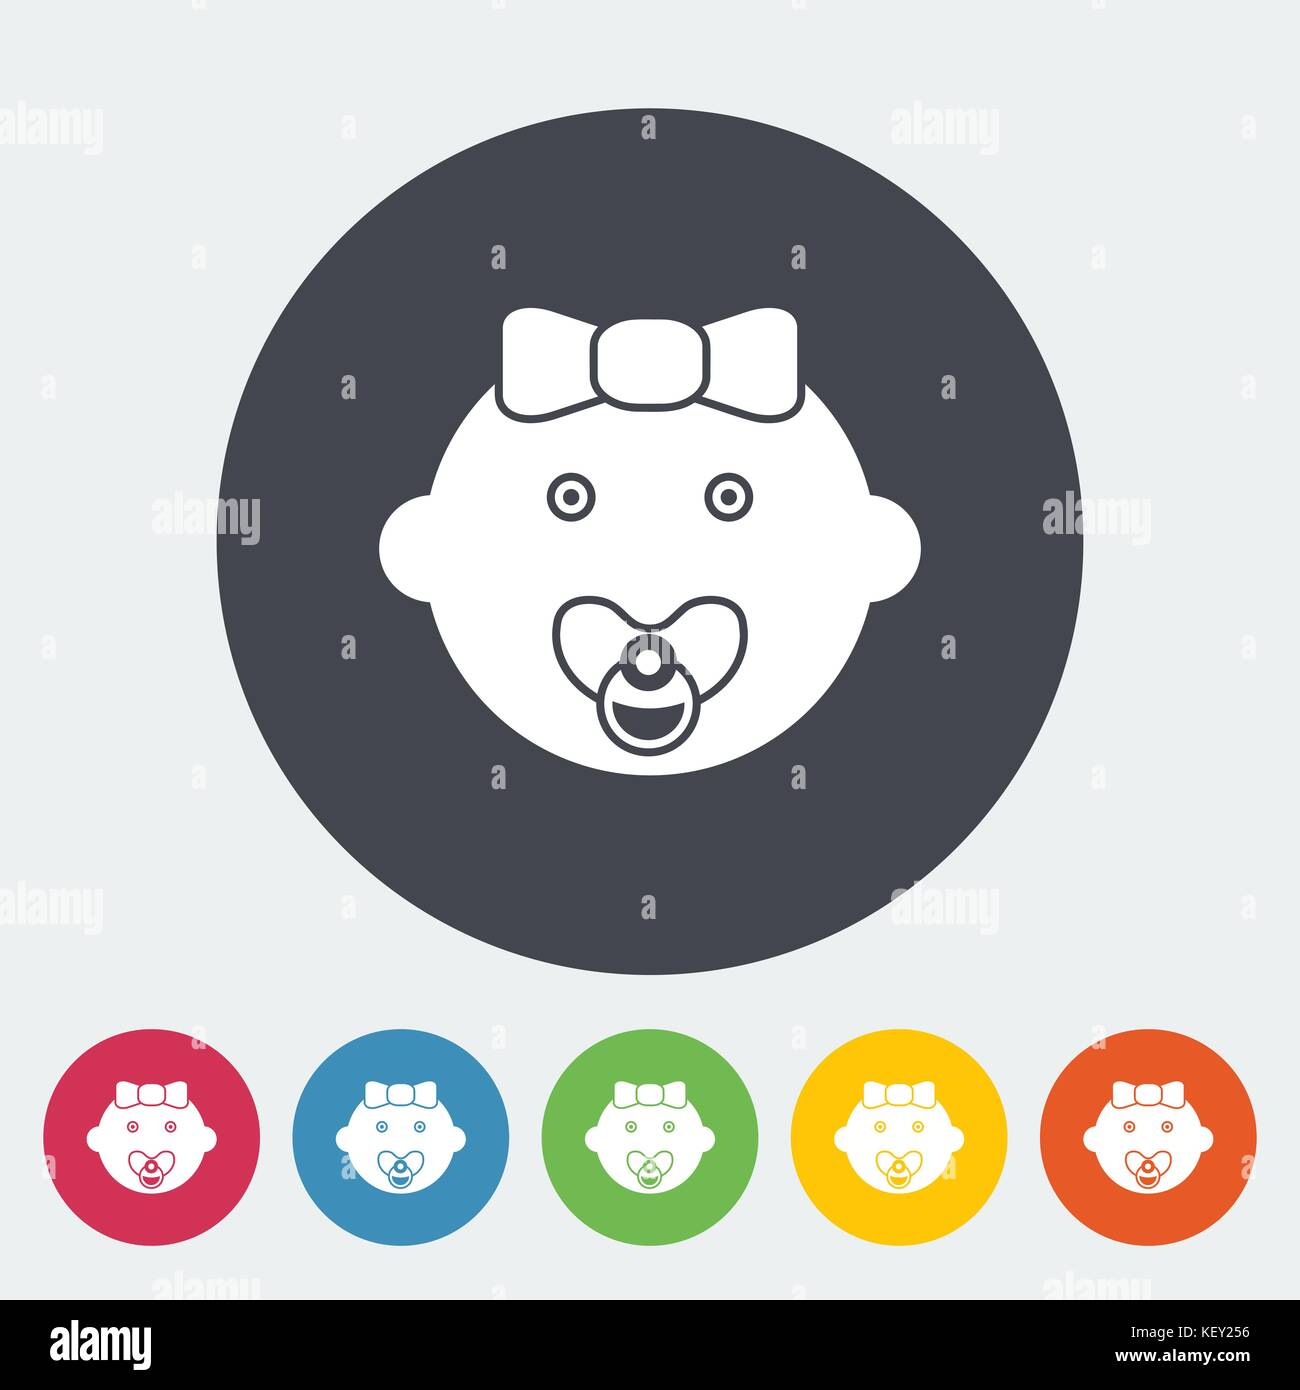 Baby girl icon. Flat vector related icon for web and mobile applications. It can be used as - logo, pictogram, icon, - Stock Vector